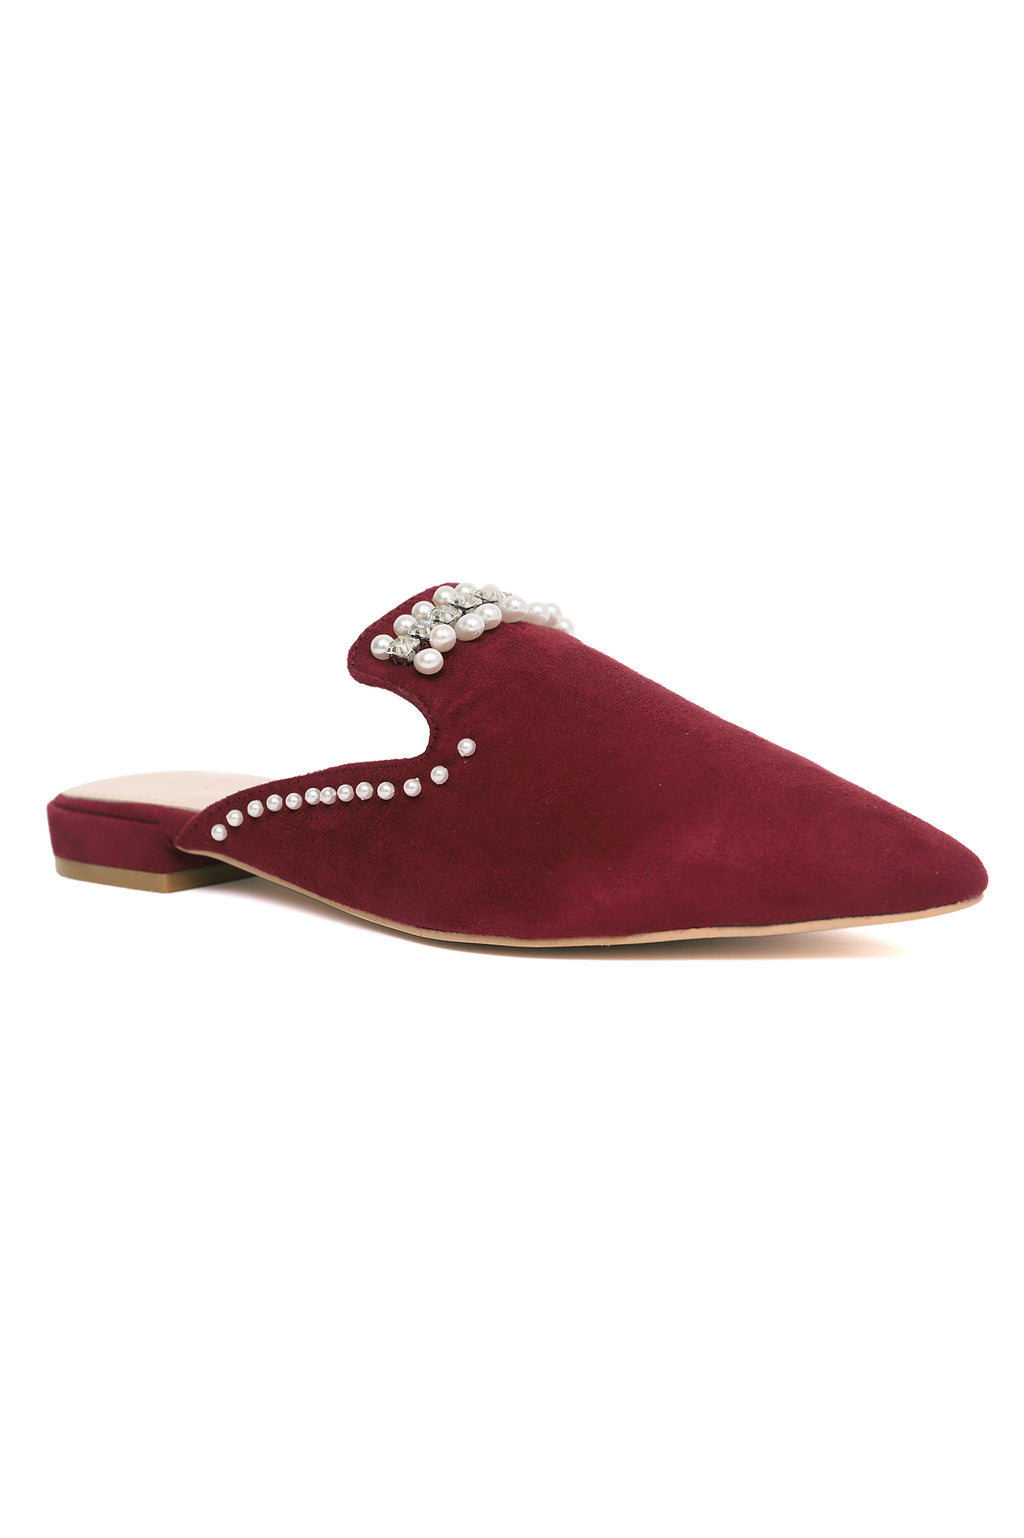 PEARLINE MULES -WINE